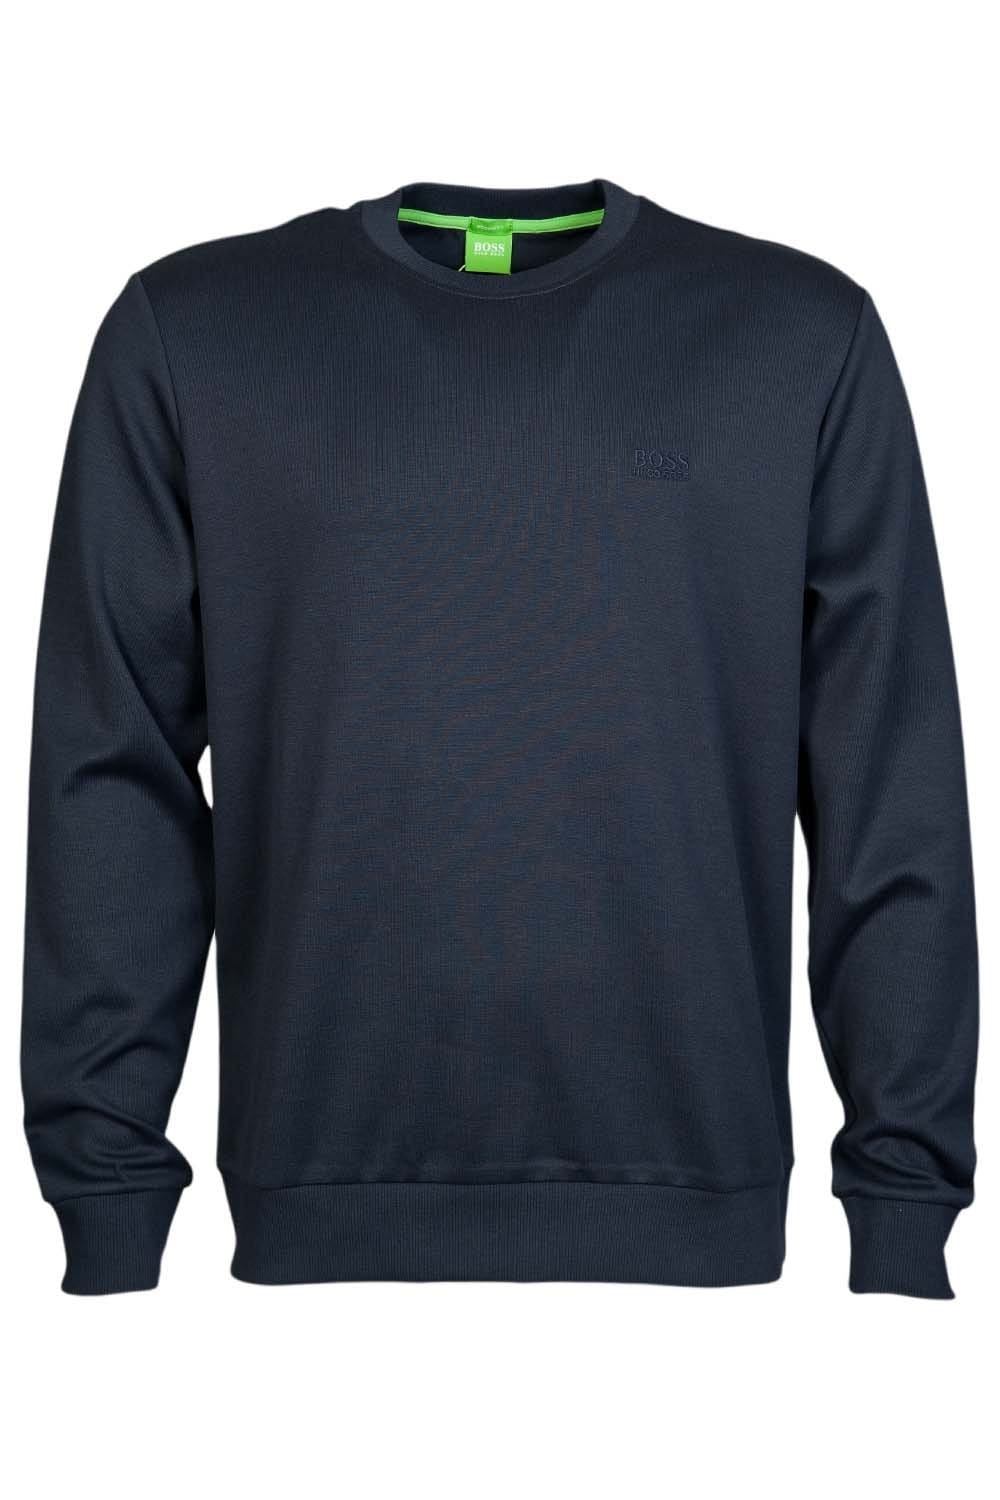 f1b59baa2 HUGO BOSS GREEN Sweatshirt in Grey Black White and Navy Blue SALBO 1  50256911